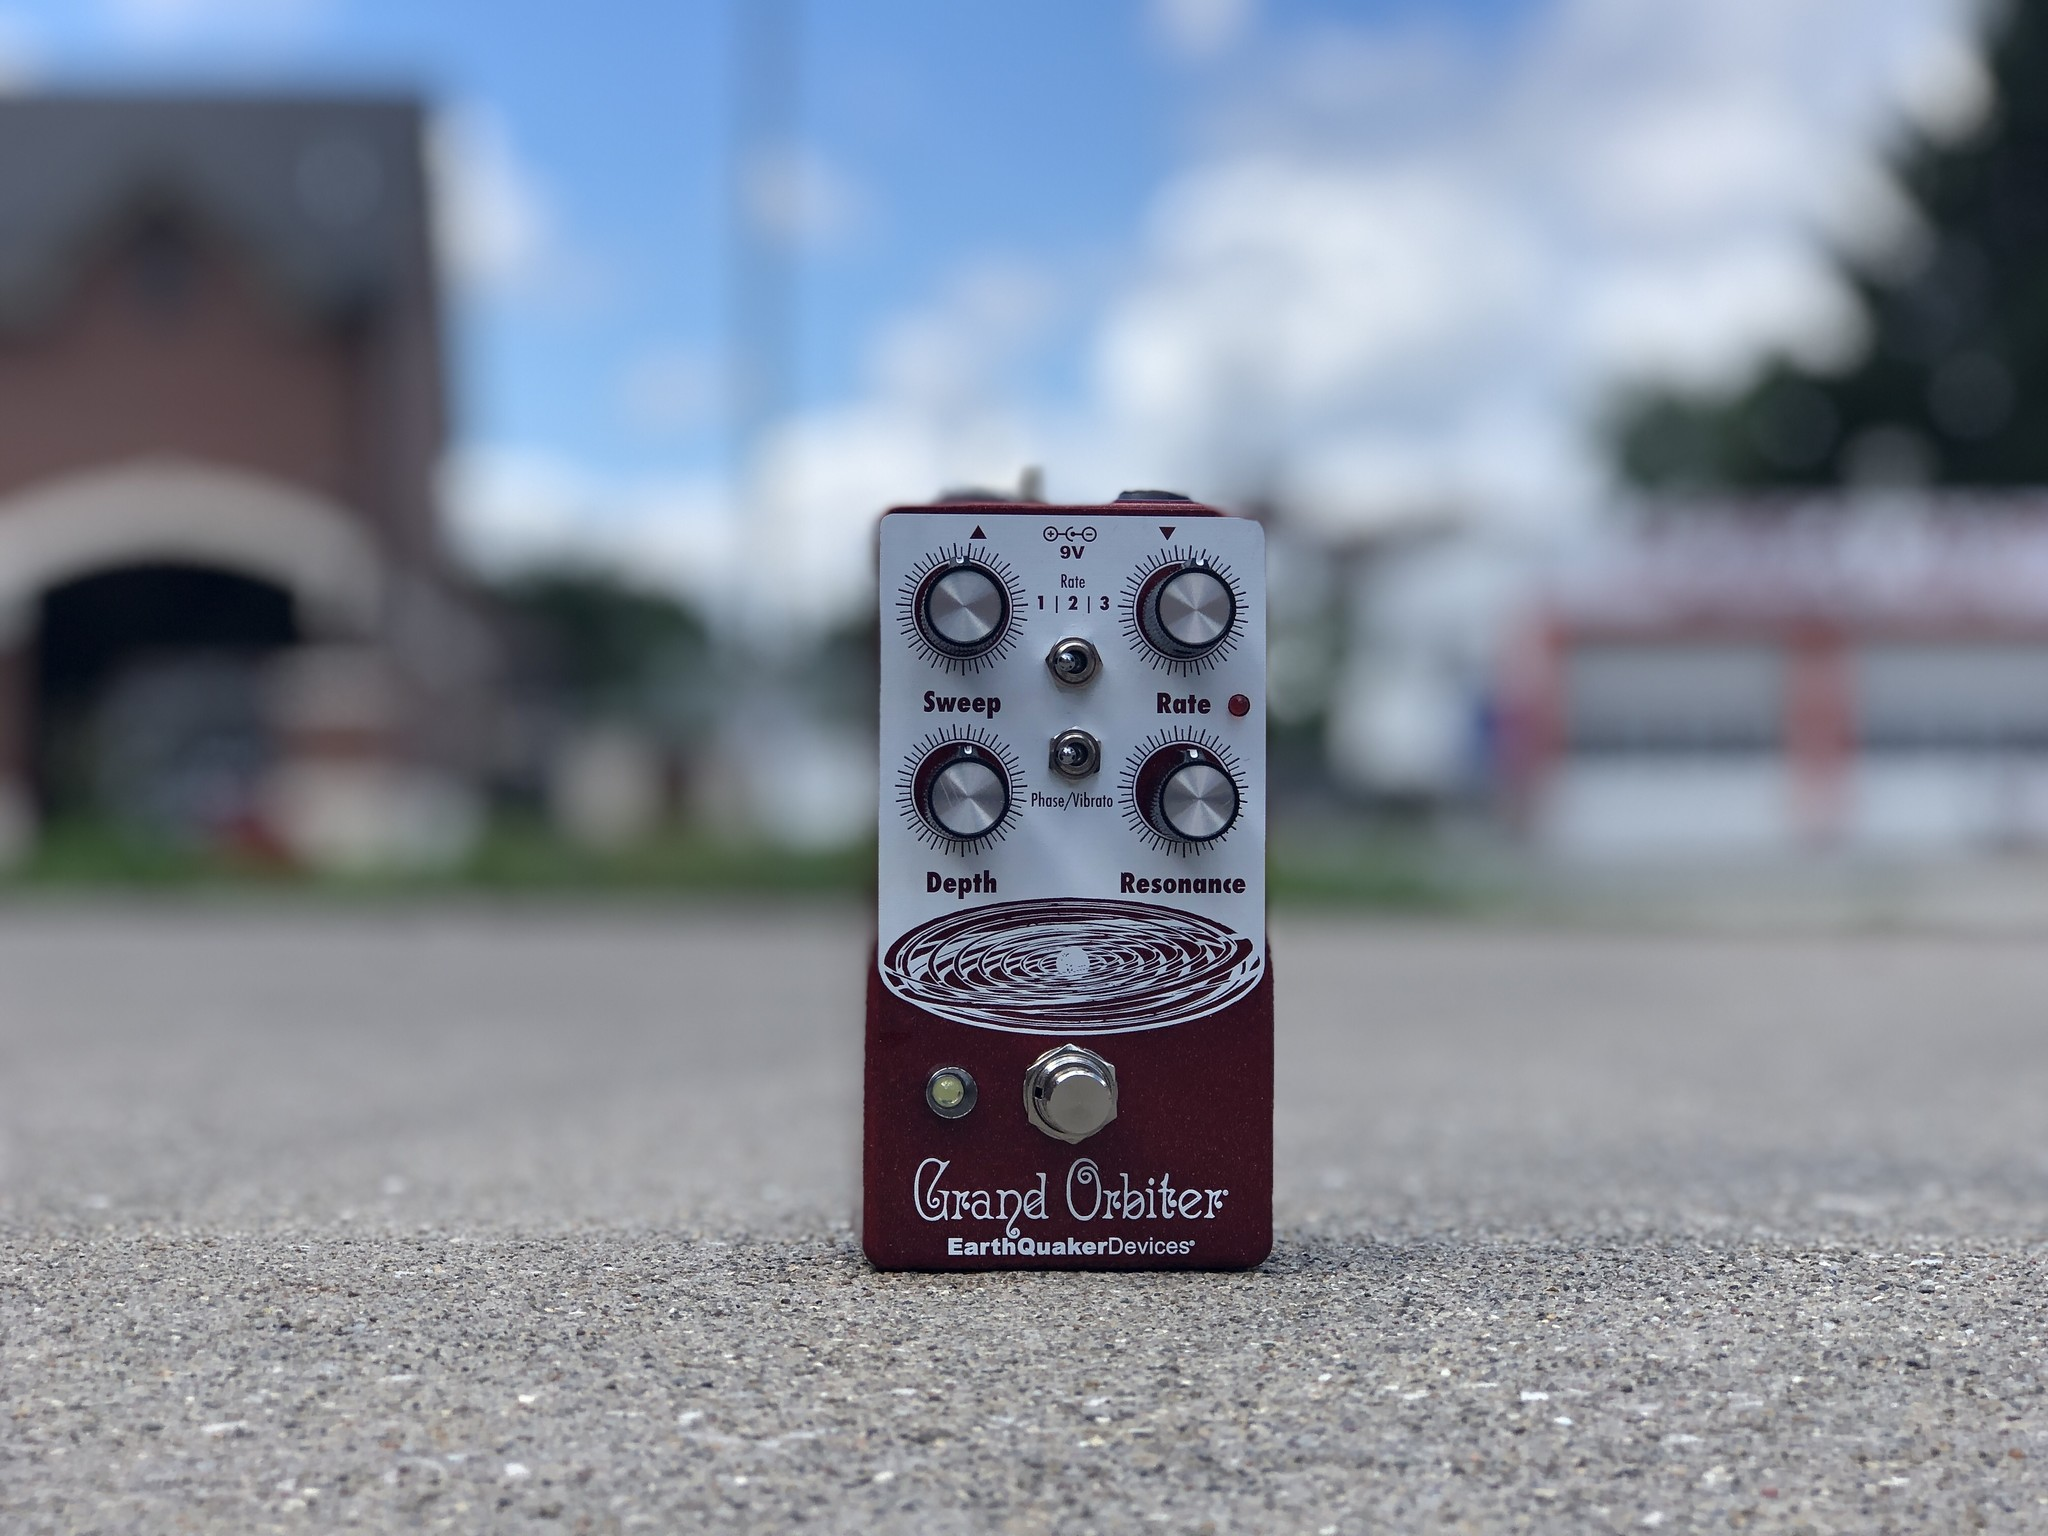 Earthquaker Devices Grand Orbiter Phase Machine-1